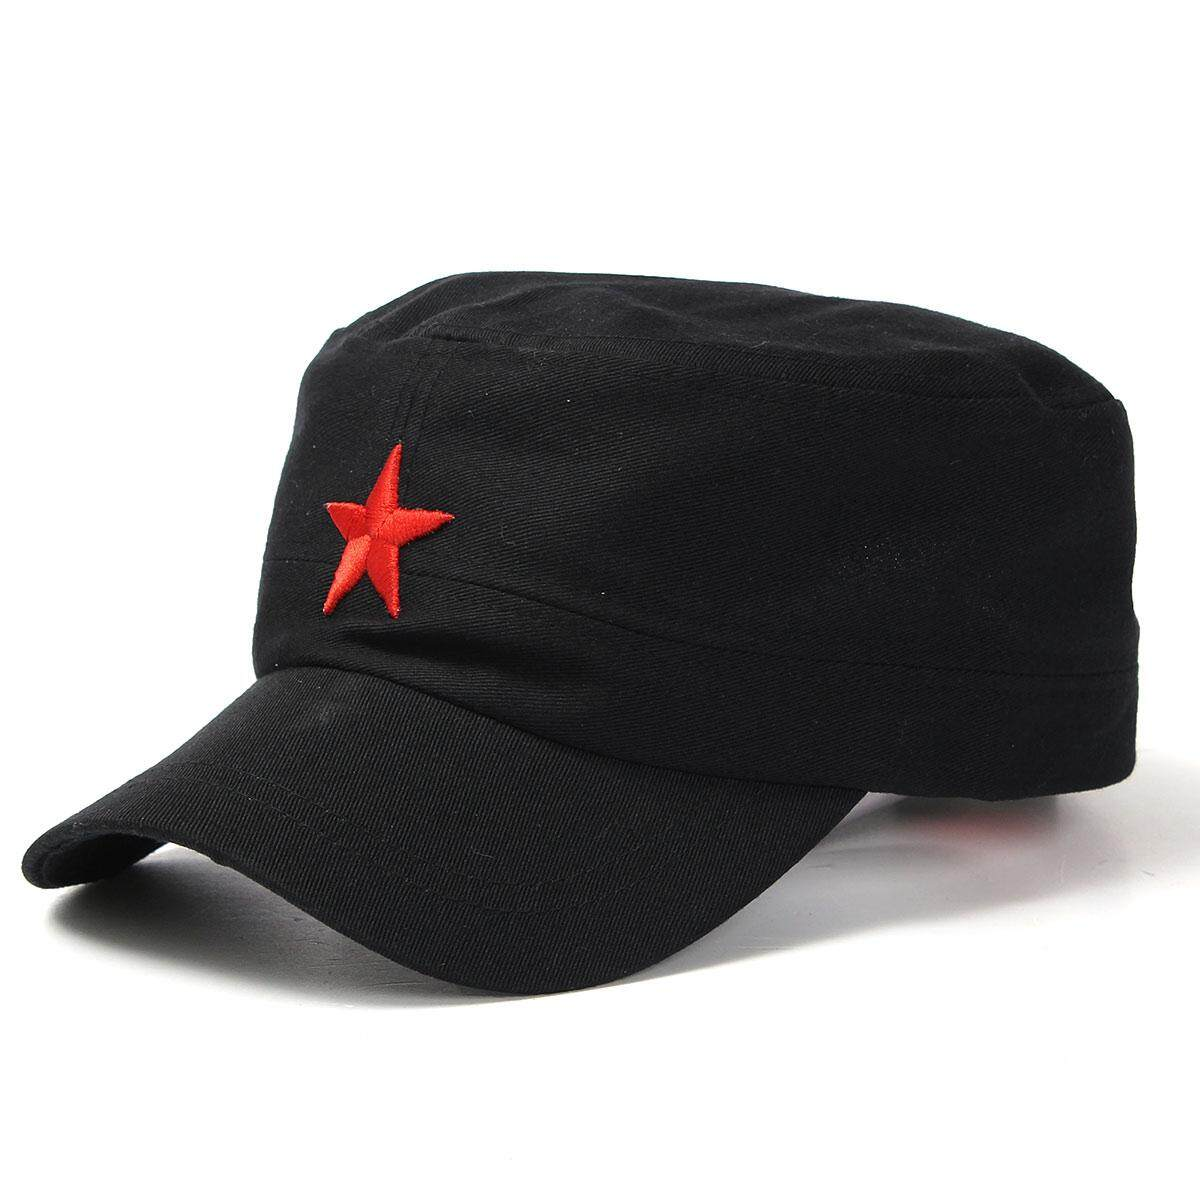 5989226a6b3 Vintage Army Cadet Military Cap Men Women Adjustable Red Star Cotton Hat  Unisex